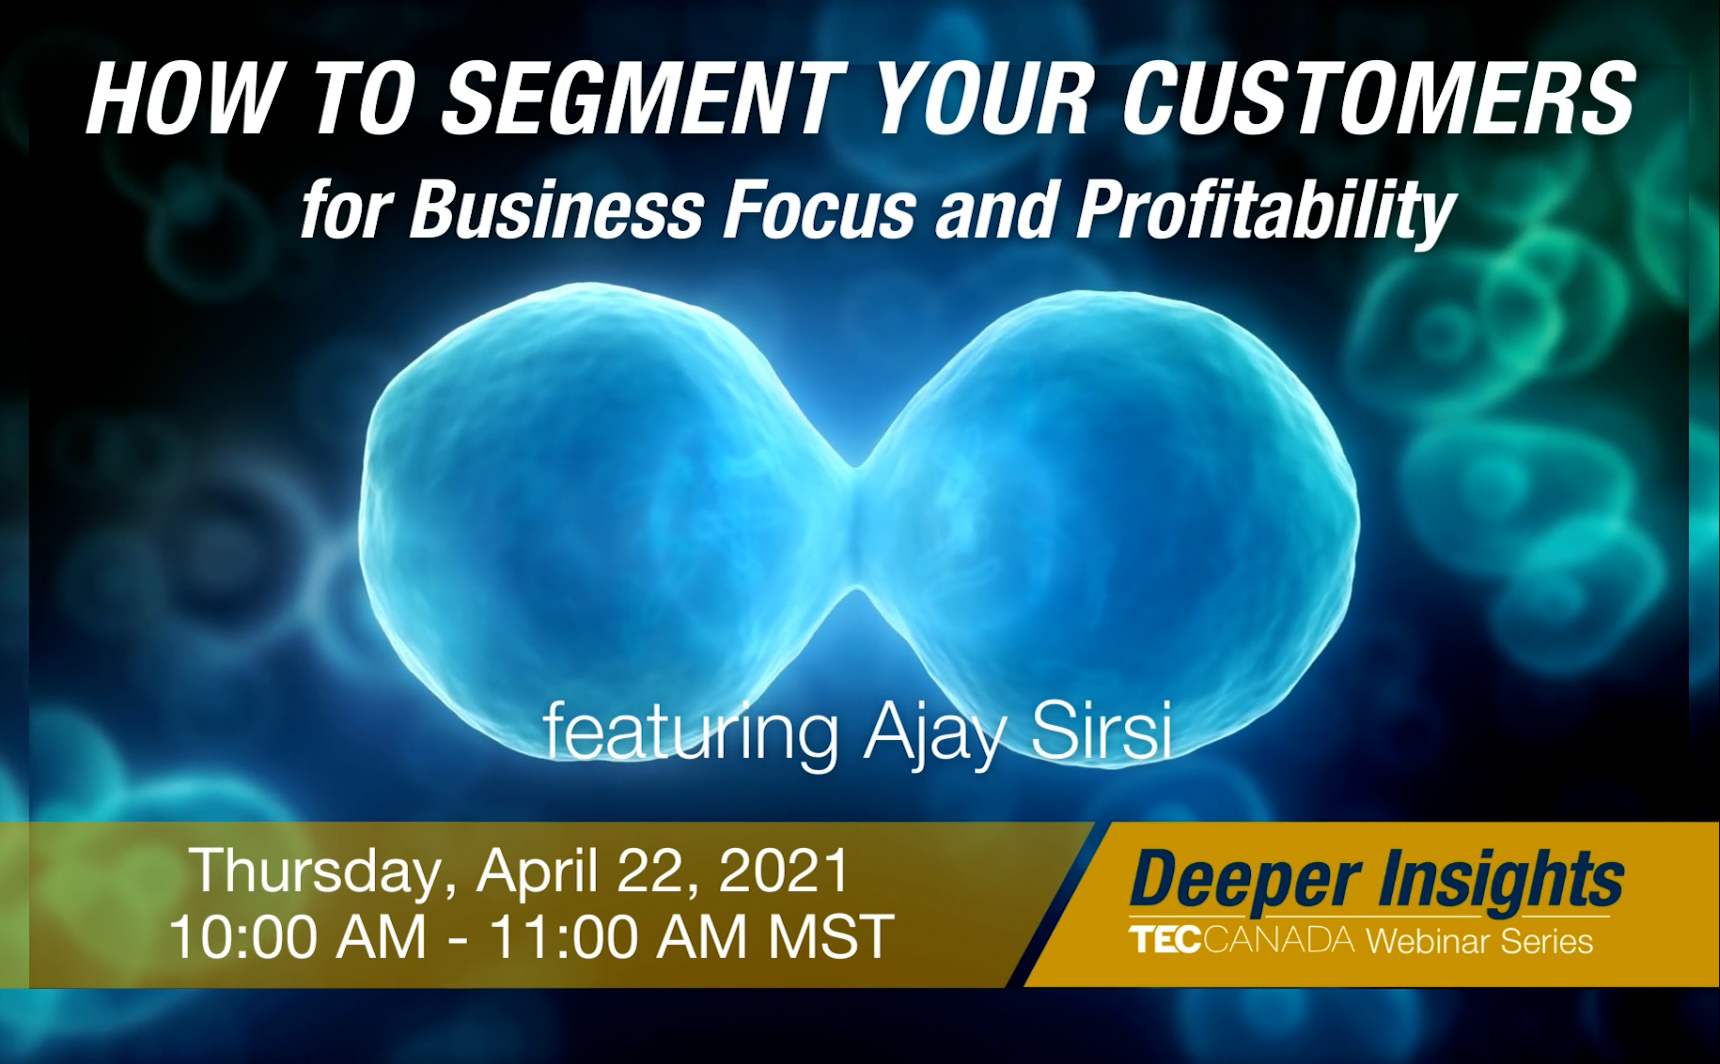 How To Segment Your Customers